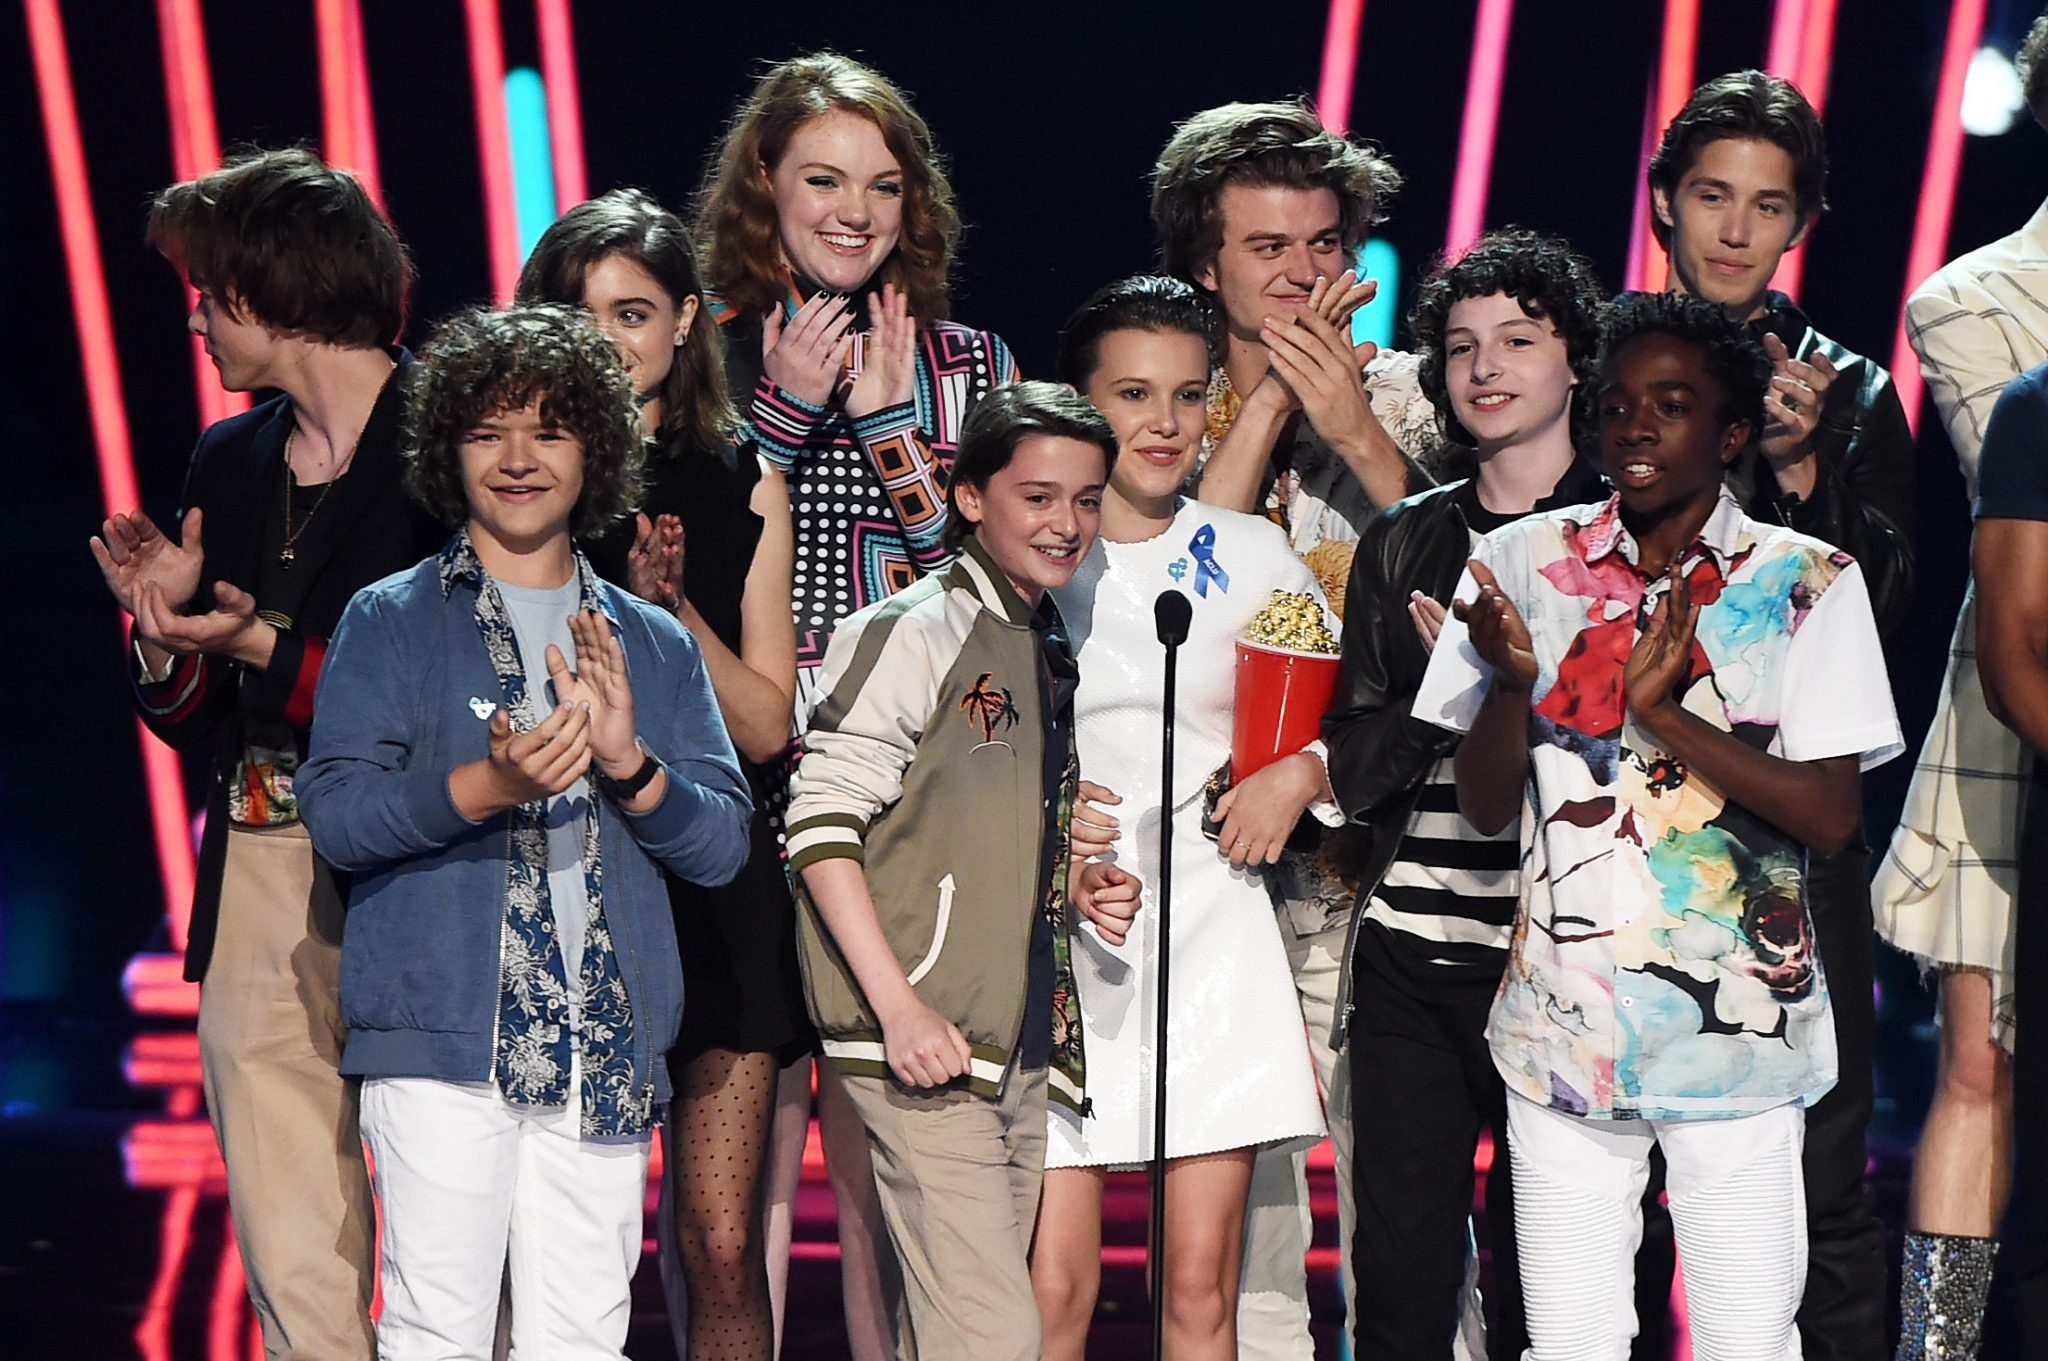 LOS ANGELES, CA - MAY 07: The cast of 'Stranger Things' accepts Show of the Year onstage during the 2017 MTV Movie And TV Awards at The Shrine Auditorium on May 7, 2017 in Los Angeles, California. Kevin Winter/Getty Images/AFP